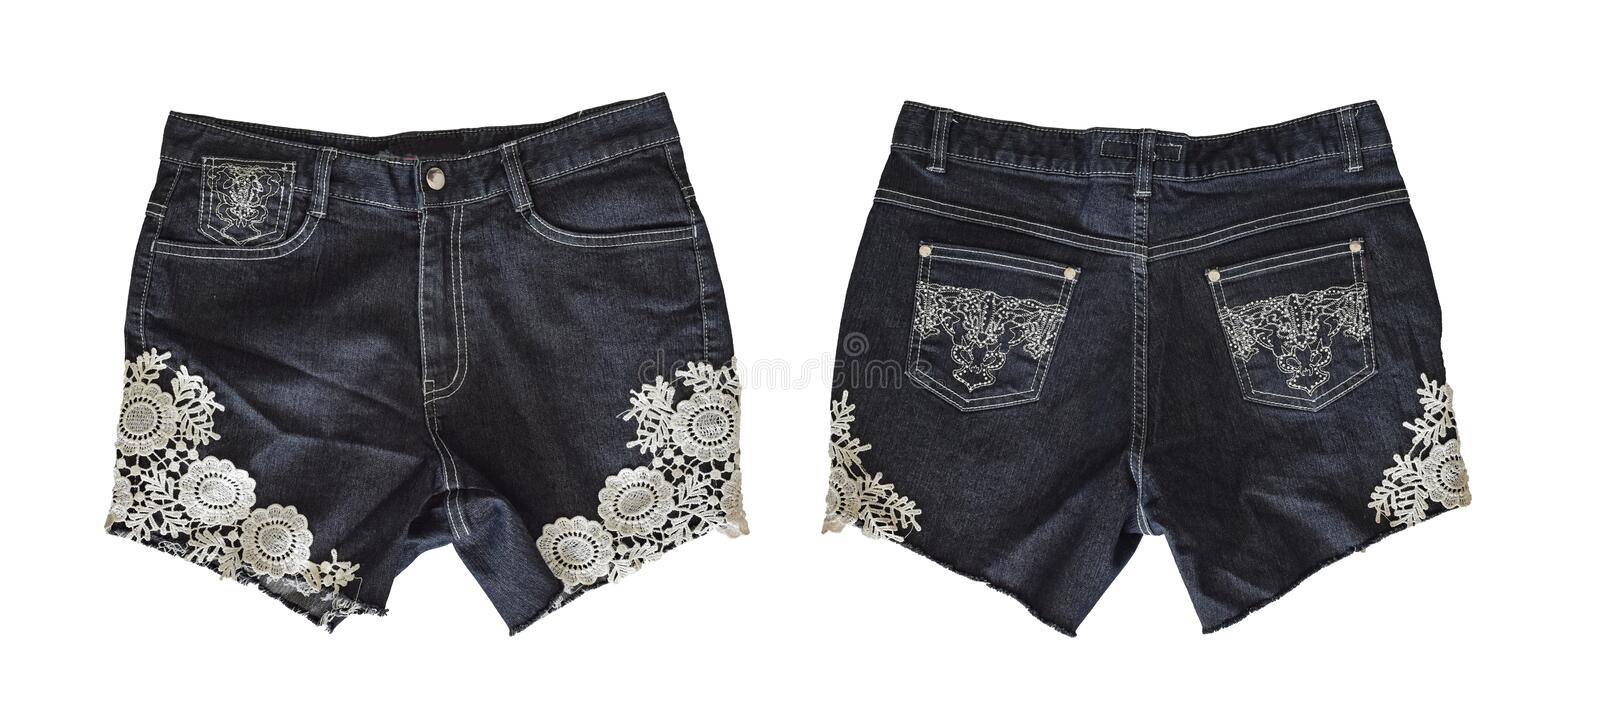 Denim shorts for female royalty free stock images